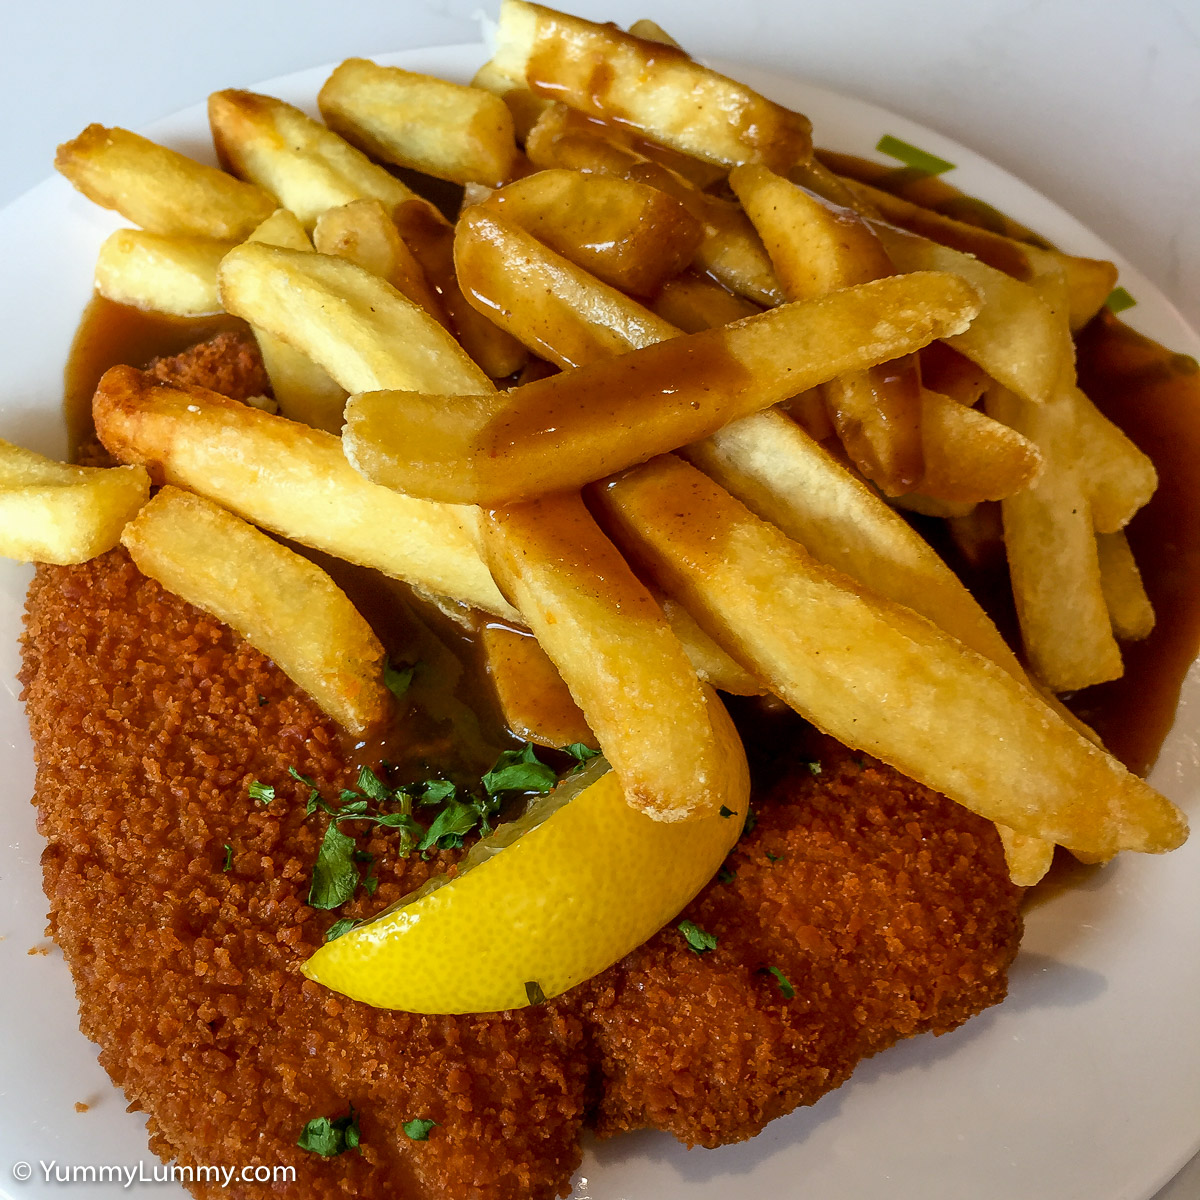 TGIF lunch. Chicken schnitzel with chips and gravy.